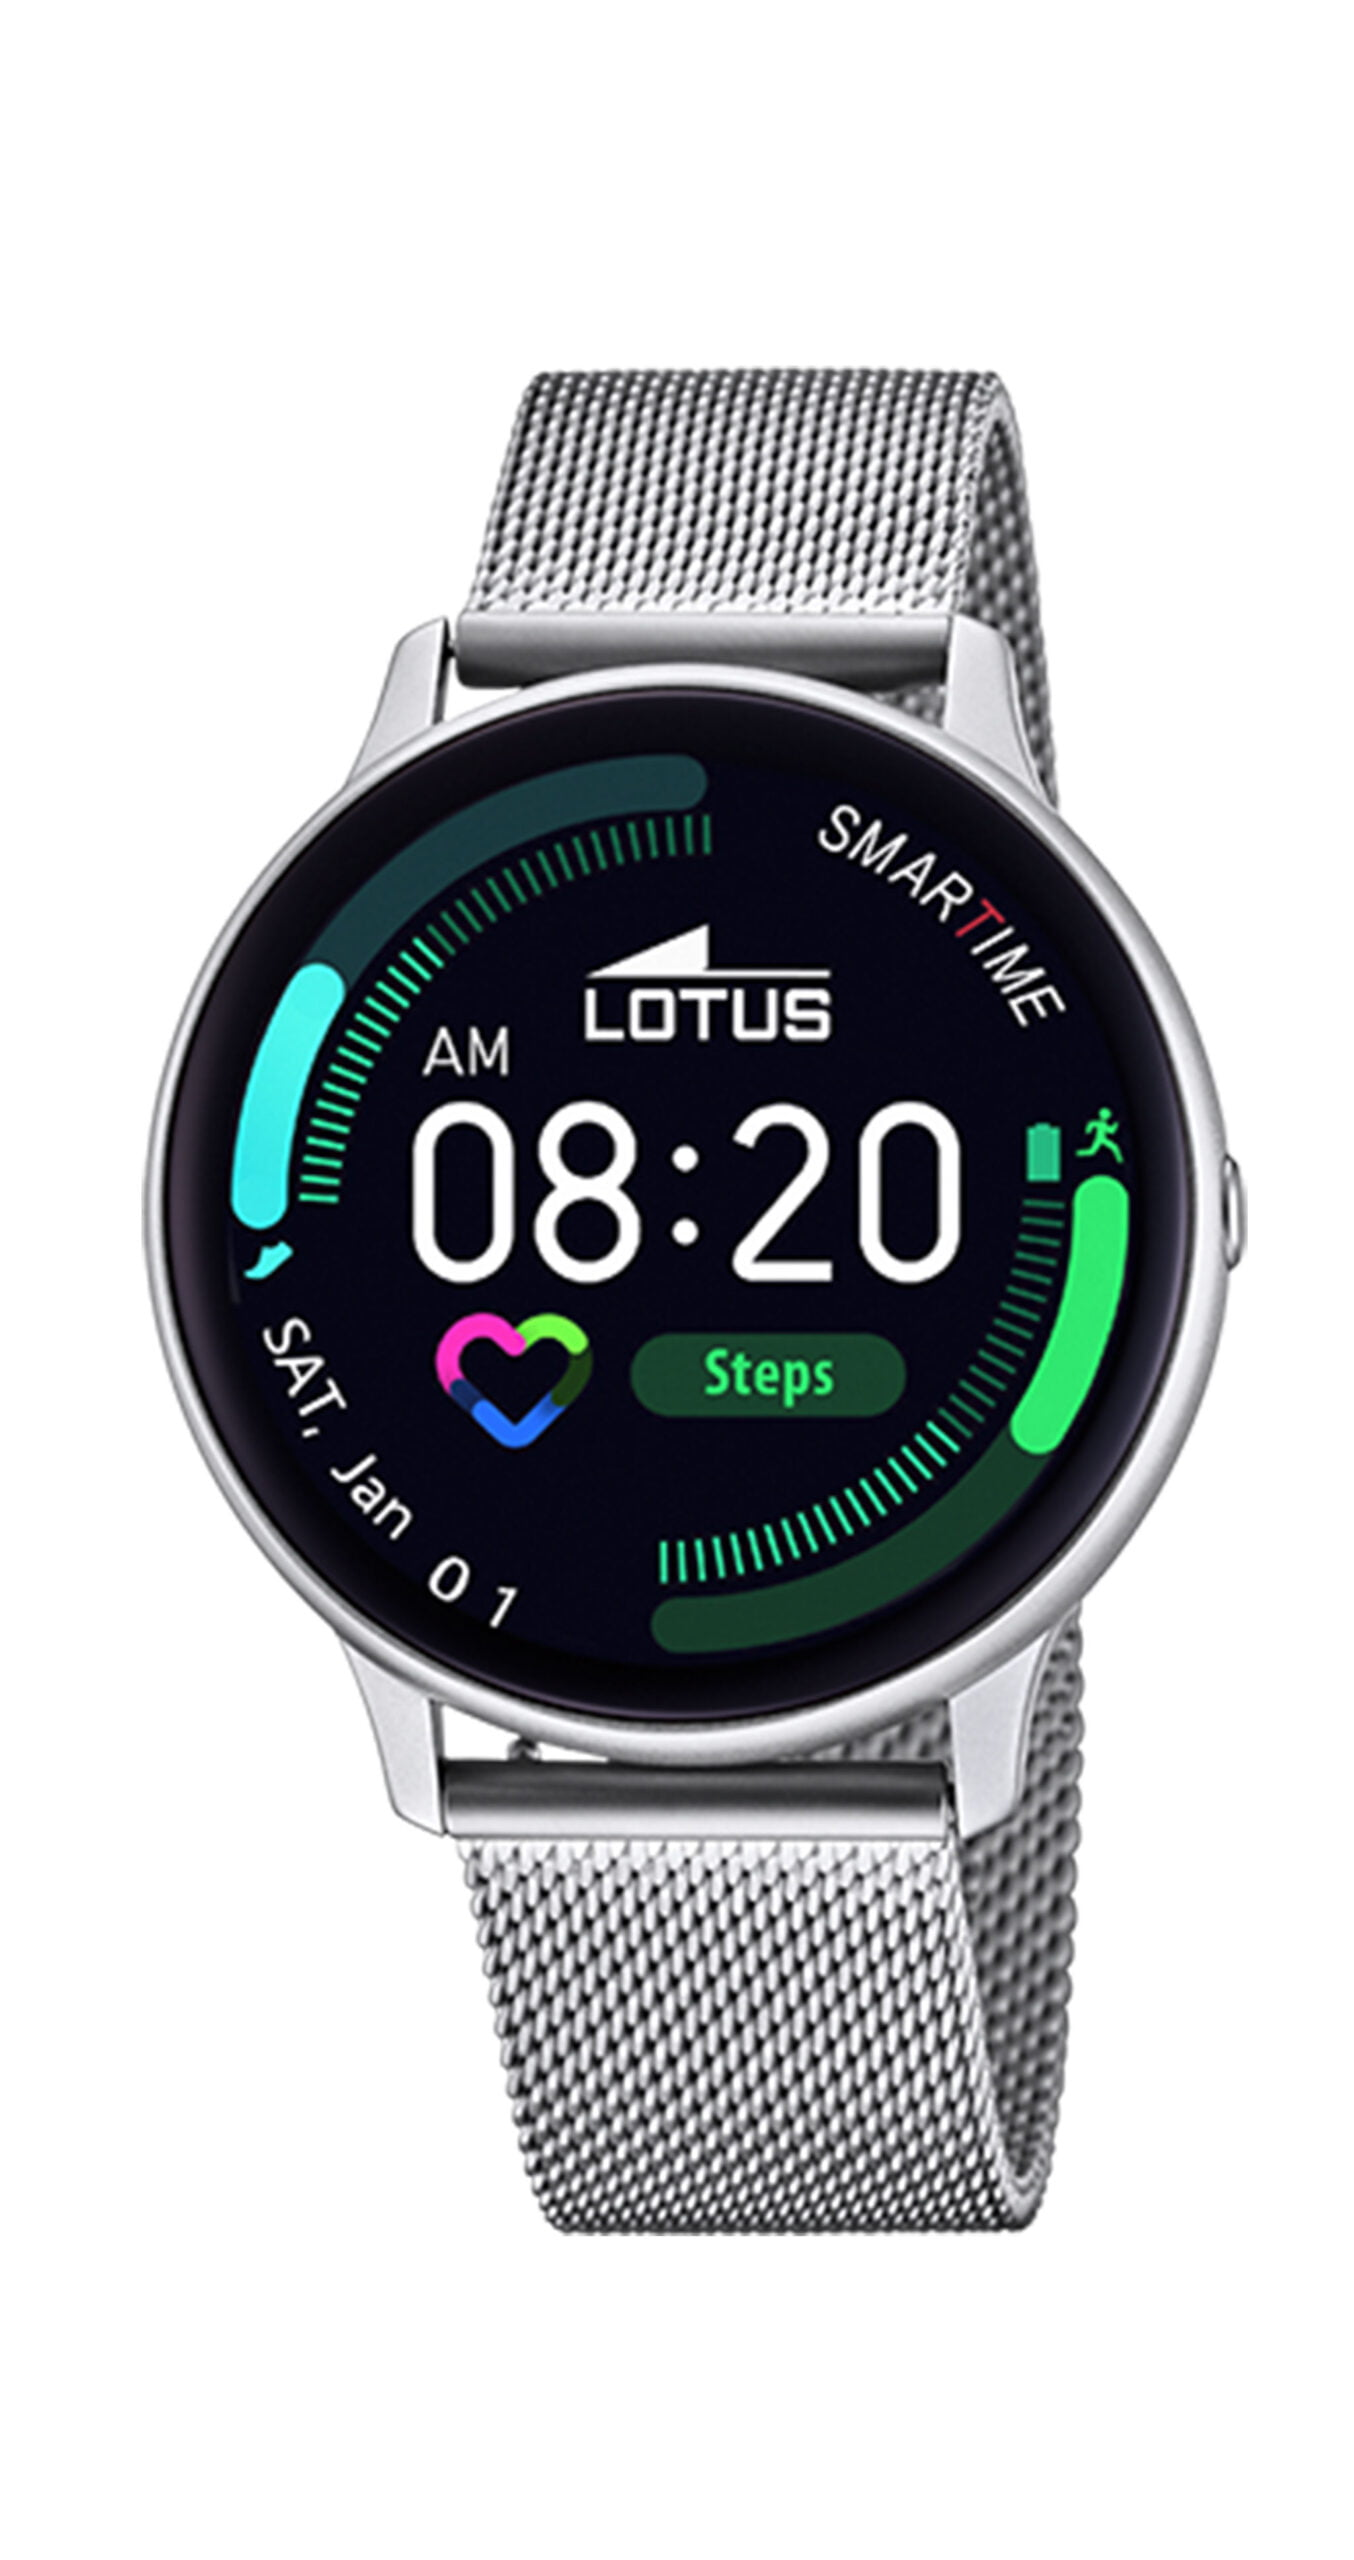 Buy a Lotus Smartwatch in Dénia - Bonilla Jewelry